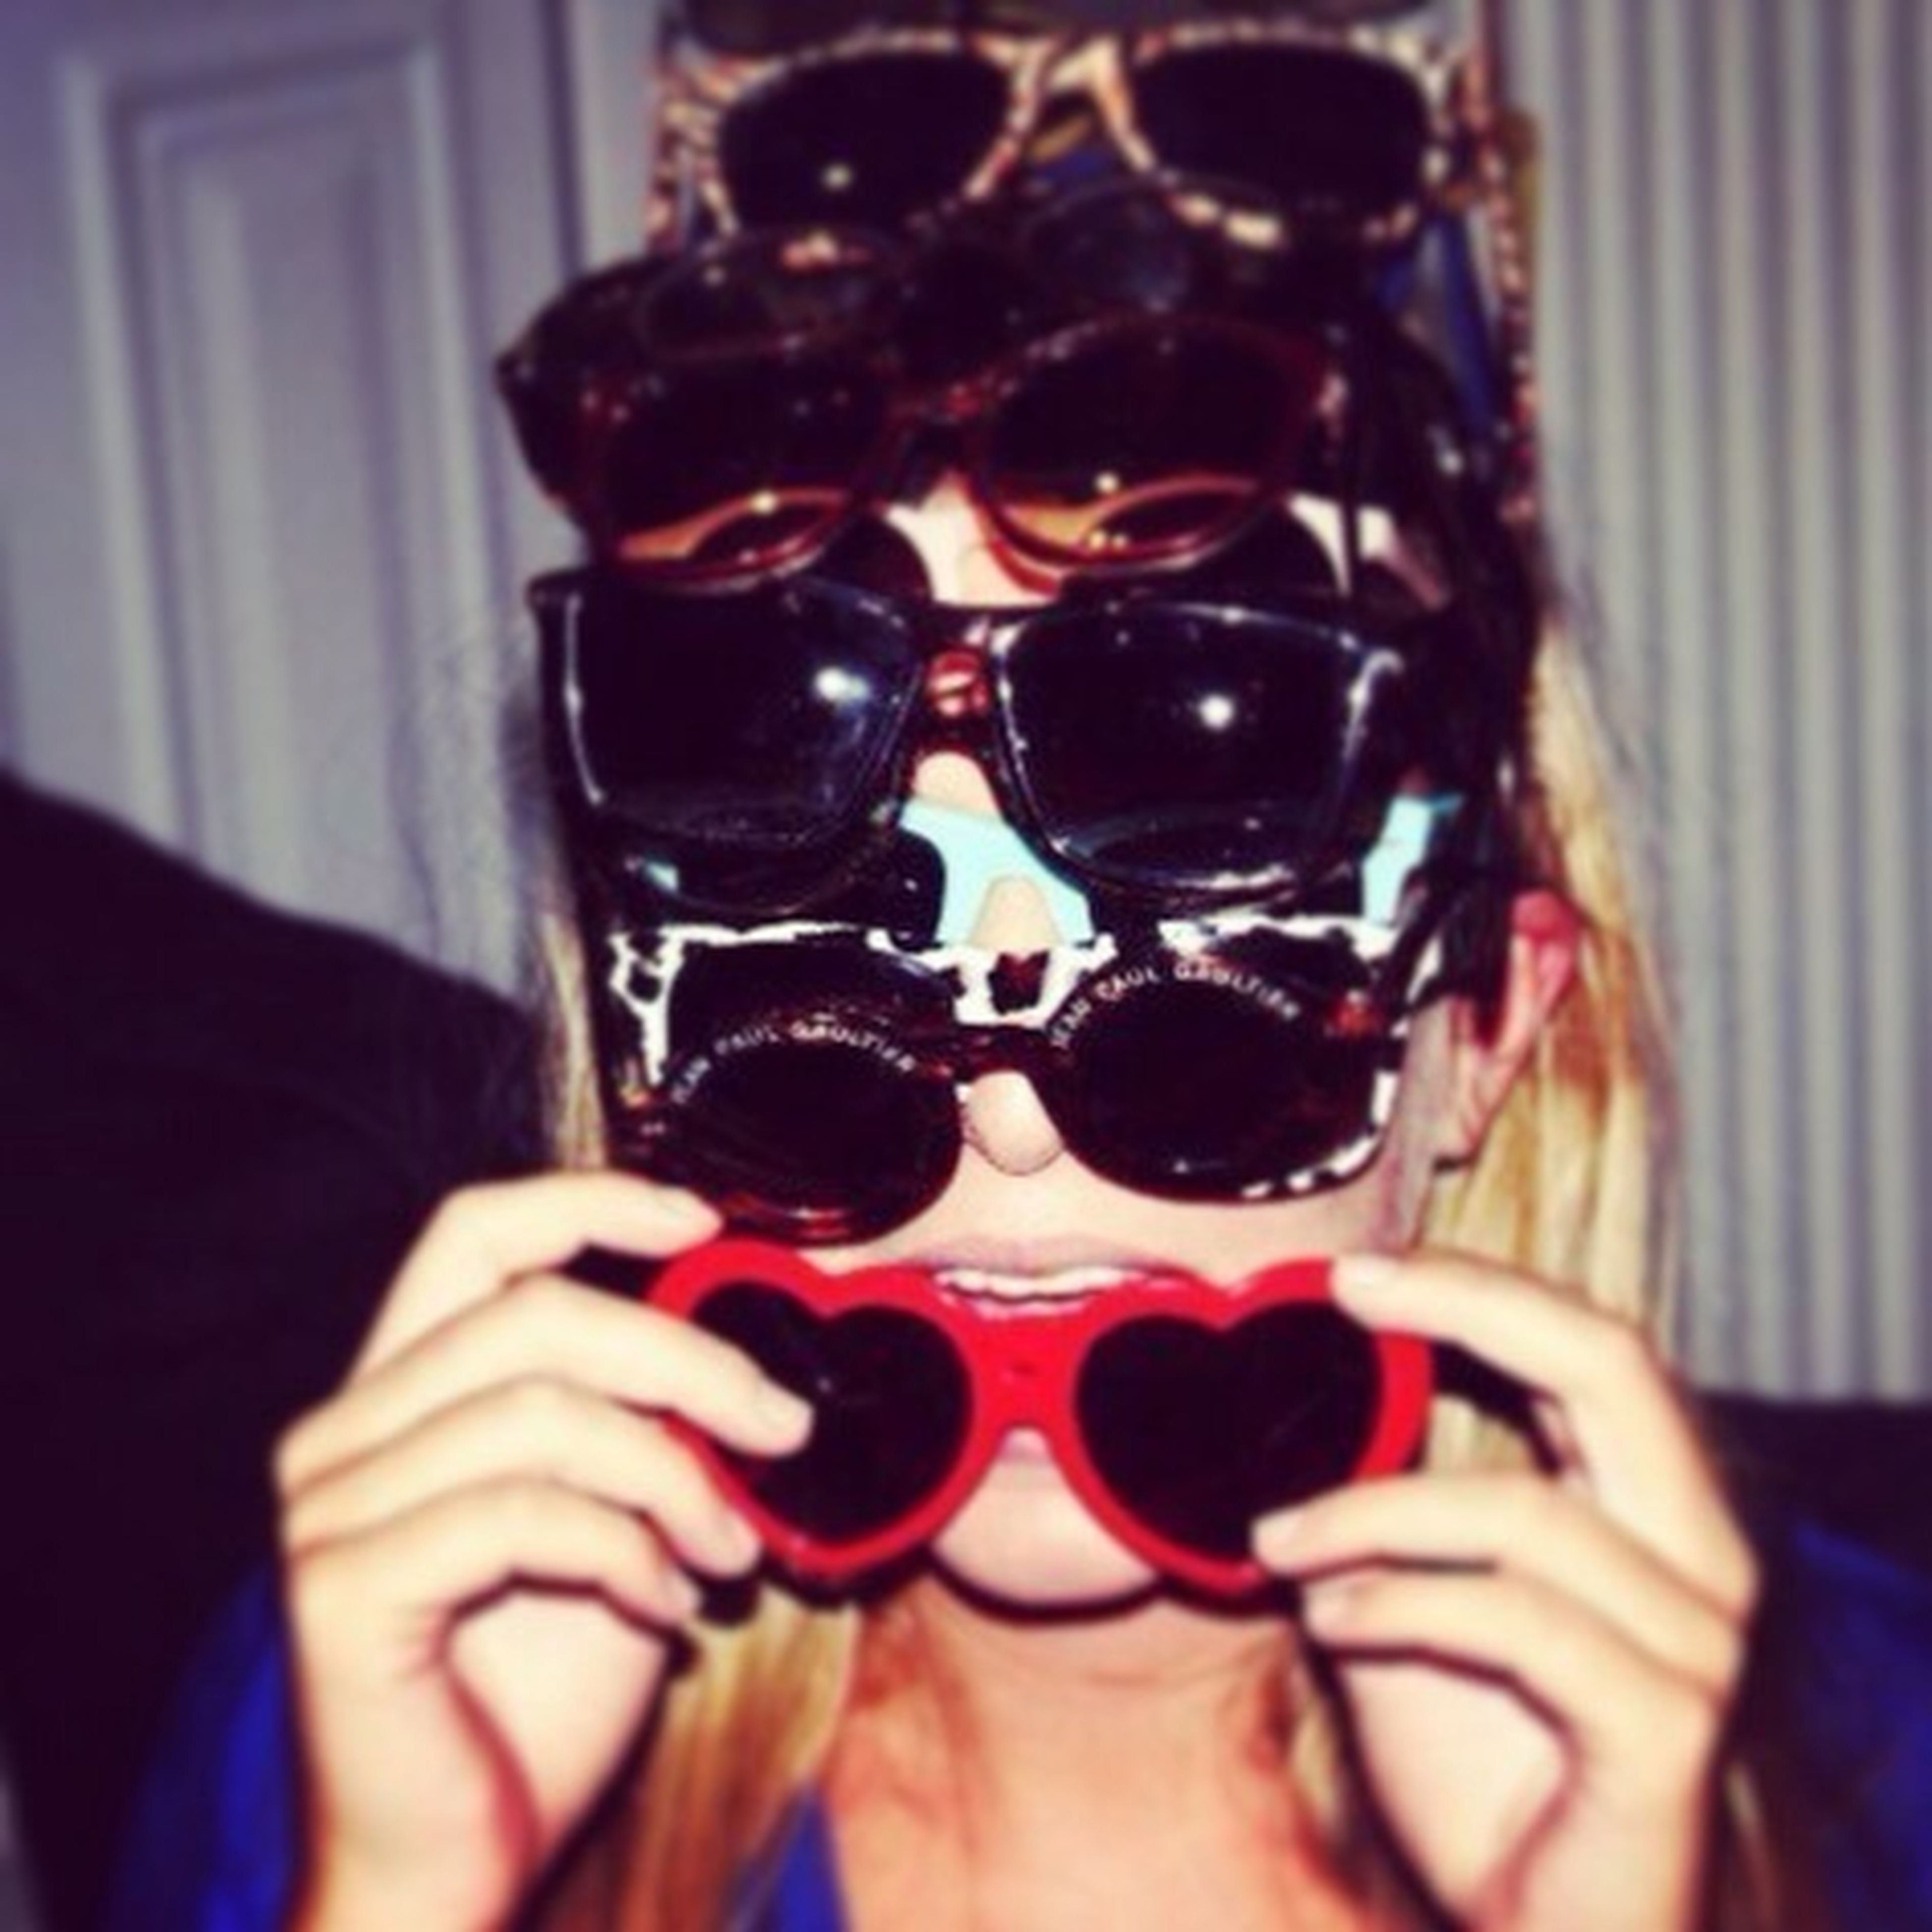 lifestyles, leisure activity, person, holding, indoors, young adult, headshot, part of, front view, looking at camera, close-up, portrait, sunglasses, young women, human finger